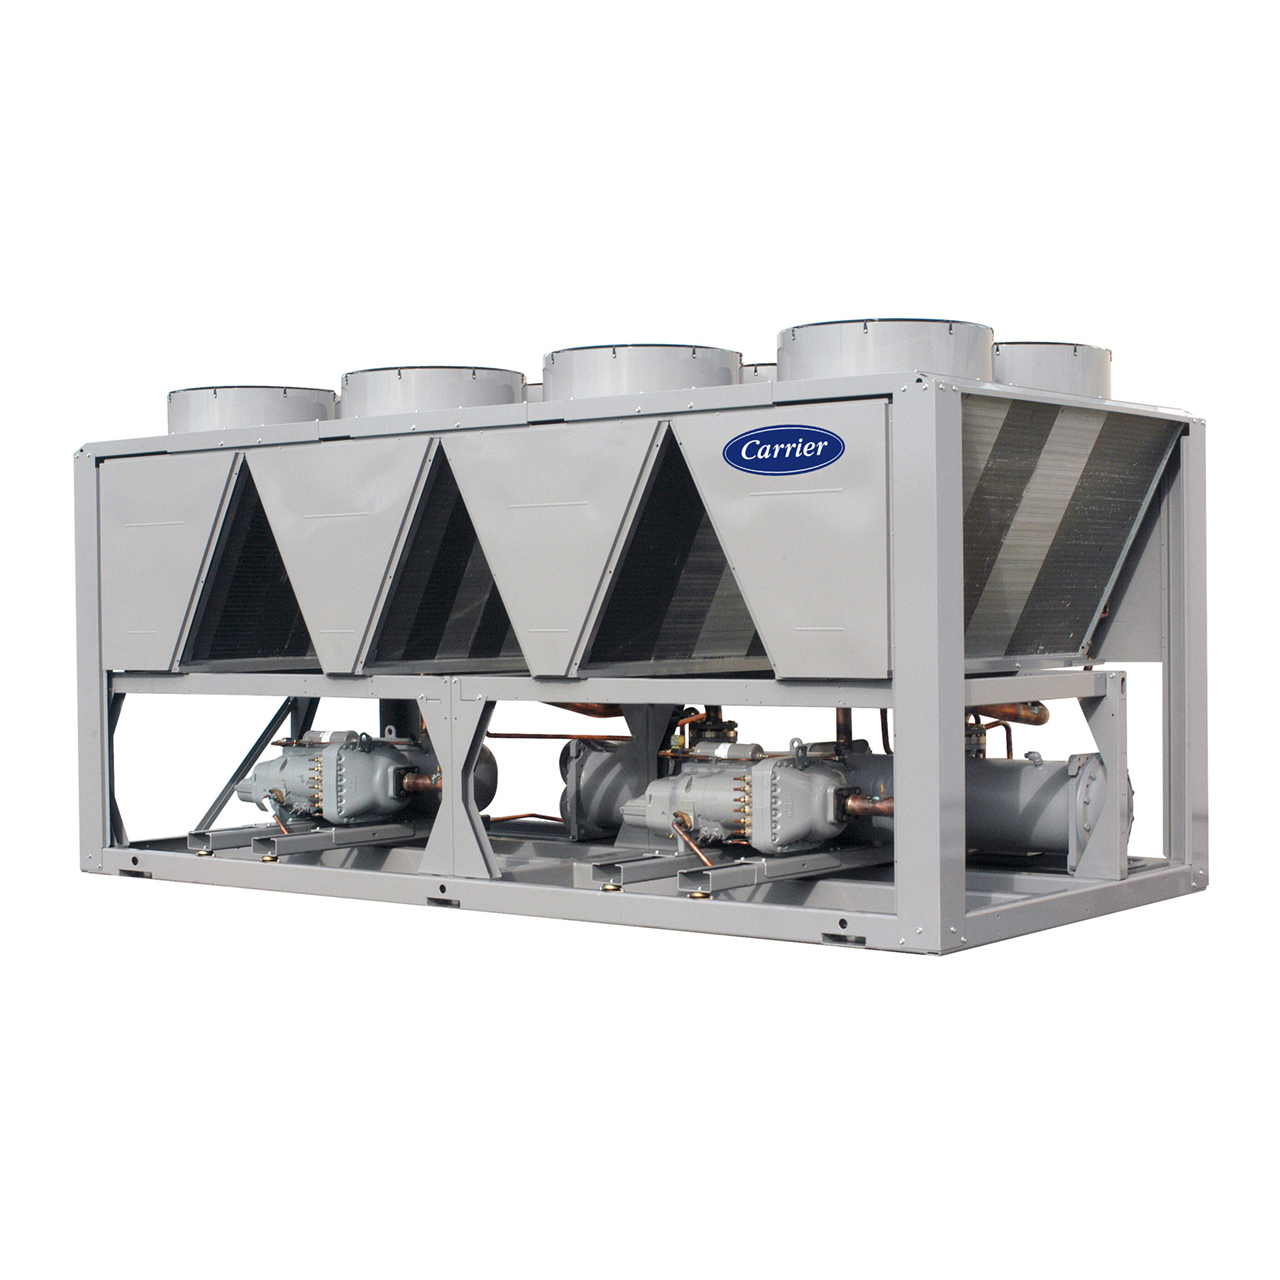 AquaForce® 30XA chillers were designed from the ground up to meet the efficiency demands of today and the future by providing premium air-cooled chiller packages for contractors, consulting engineers and building owners.